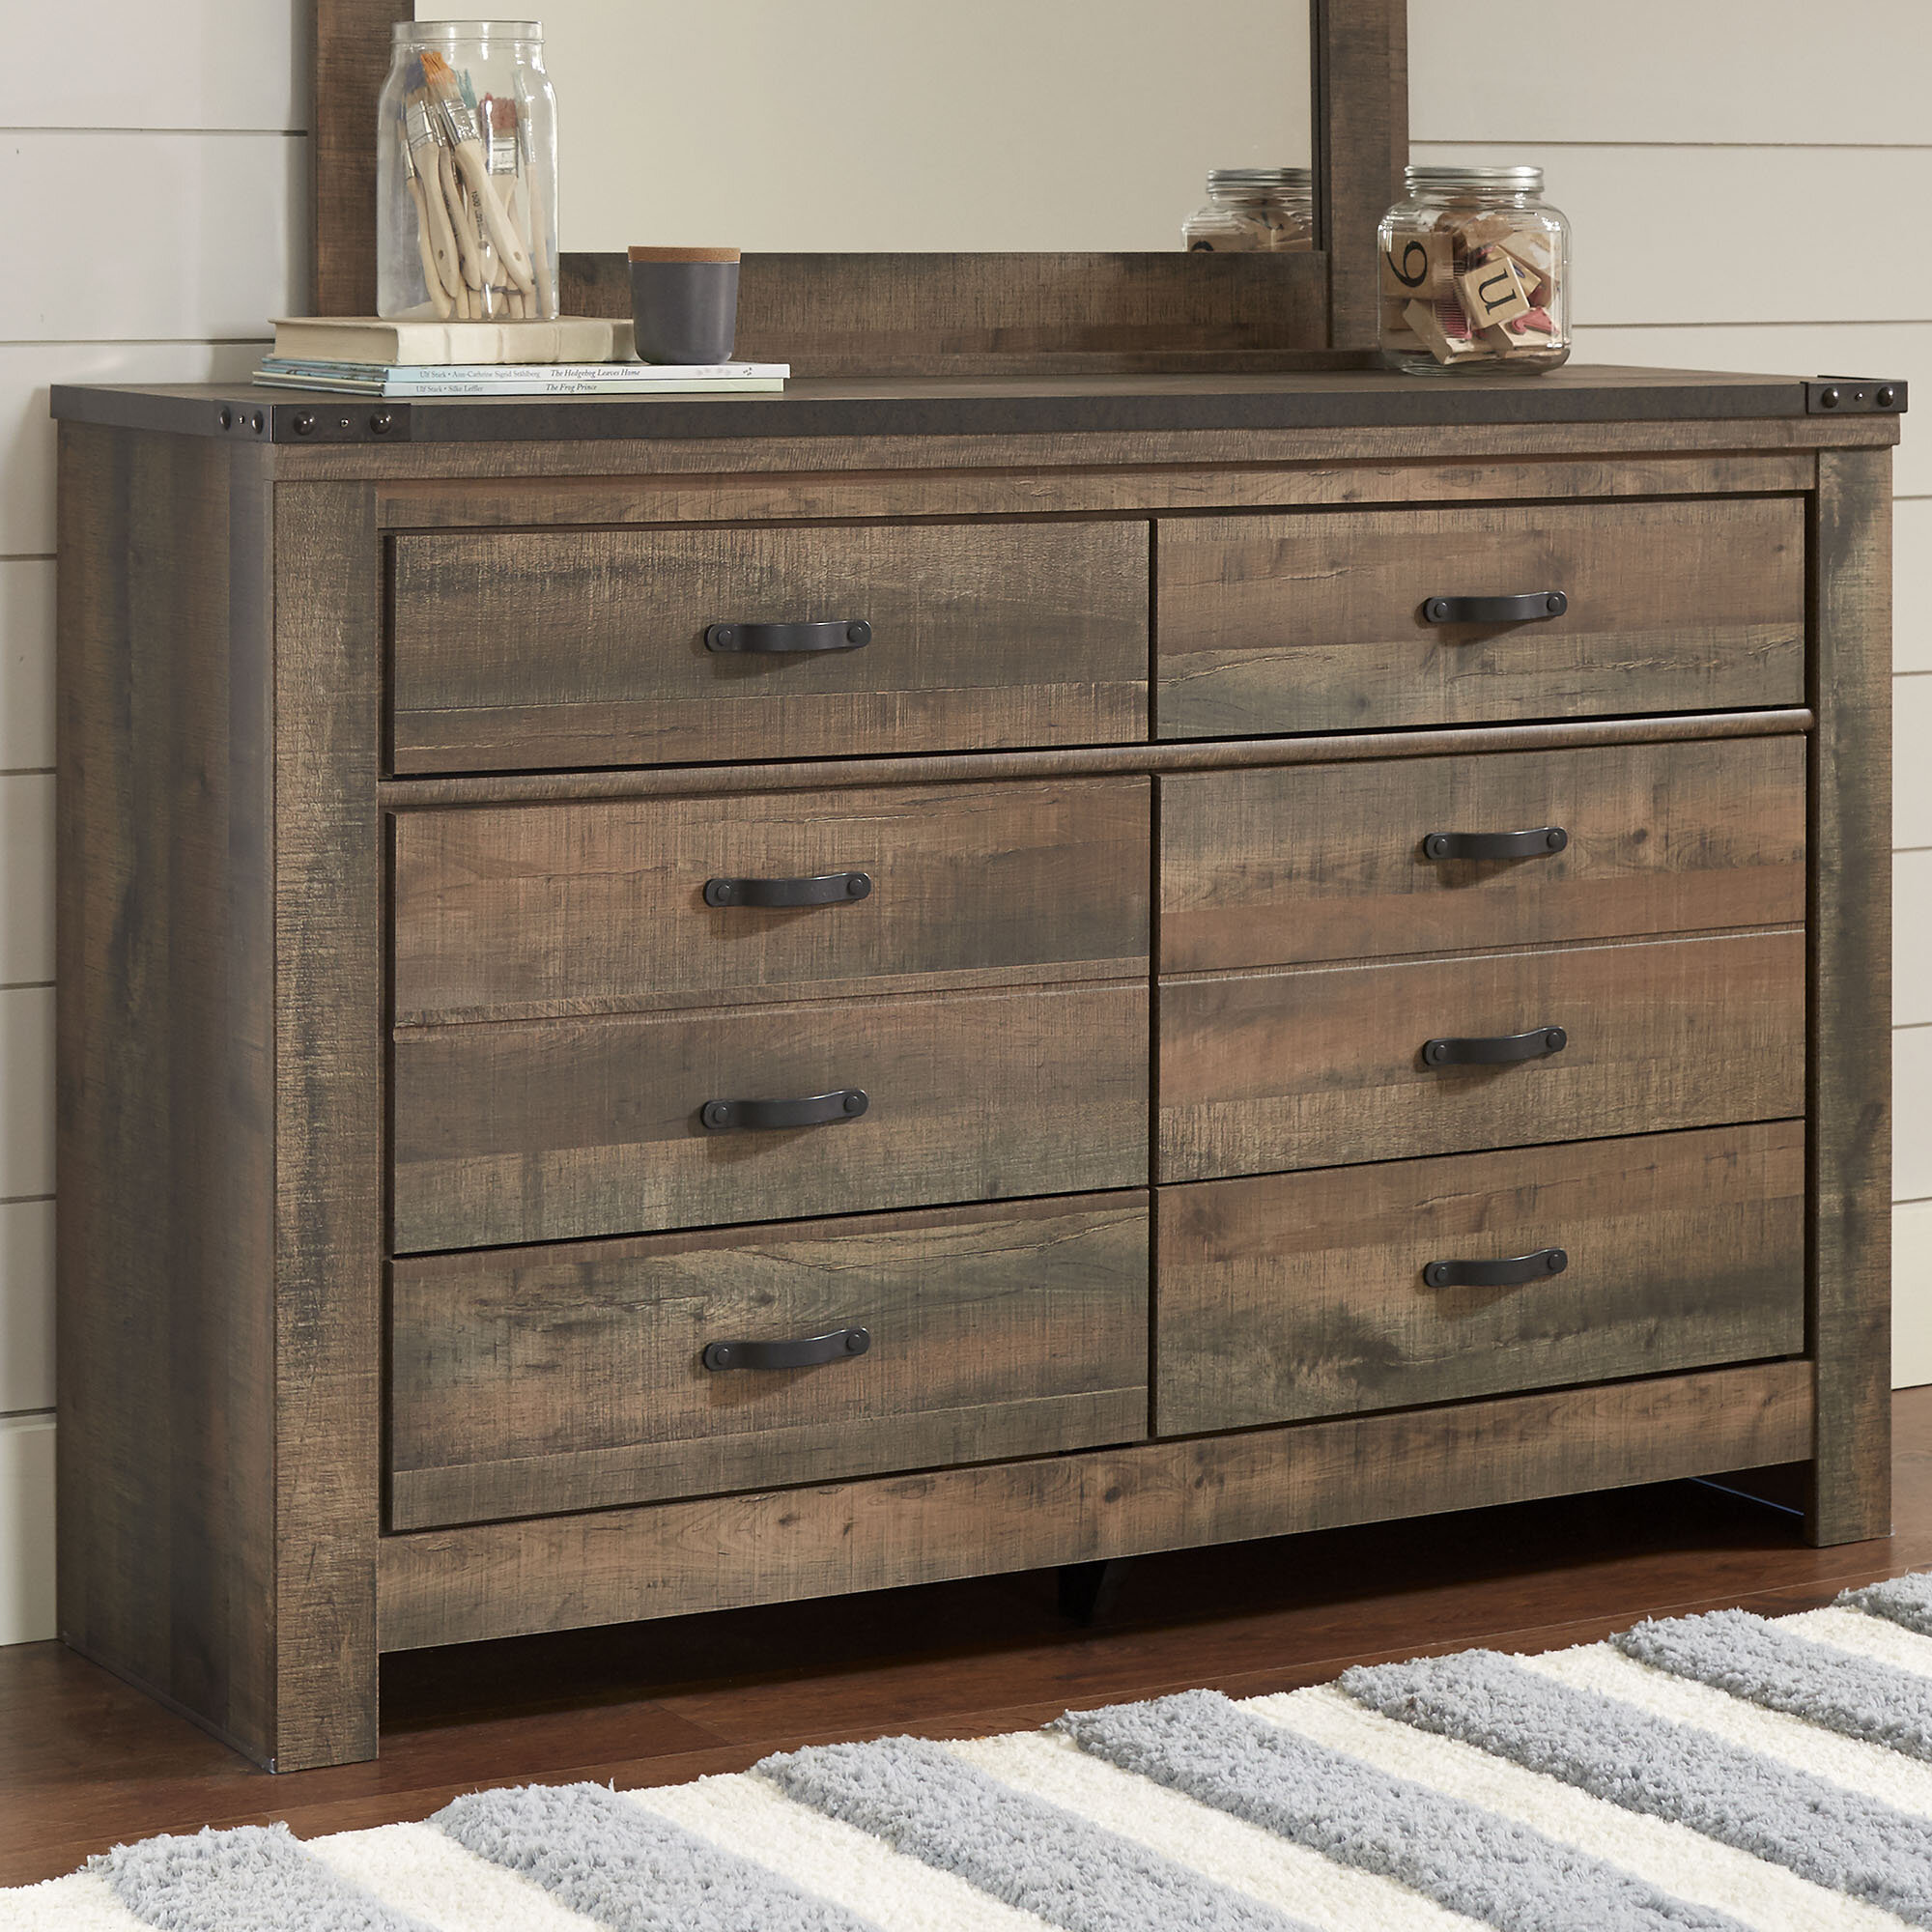 pdx davinci viv dresser kalani wayfair rae double drawer kids josie baby